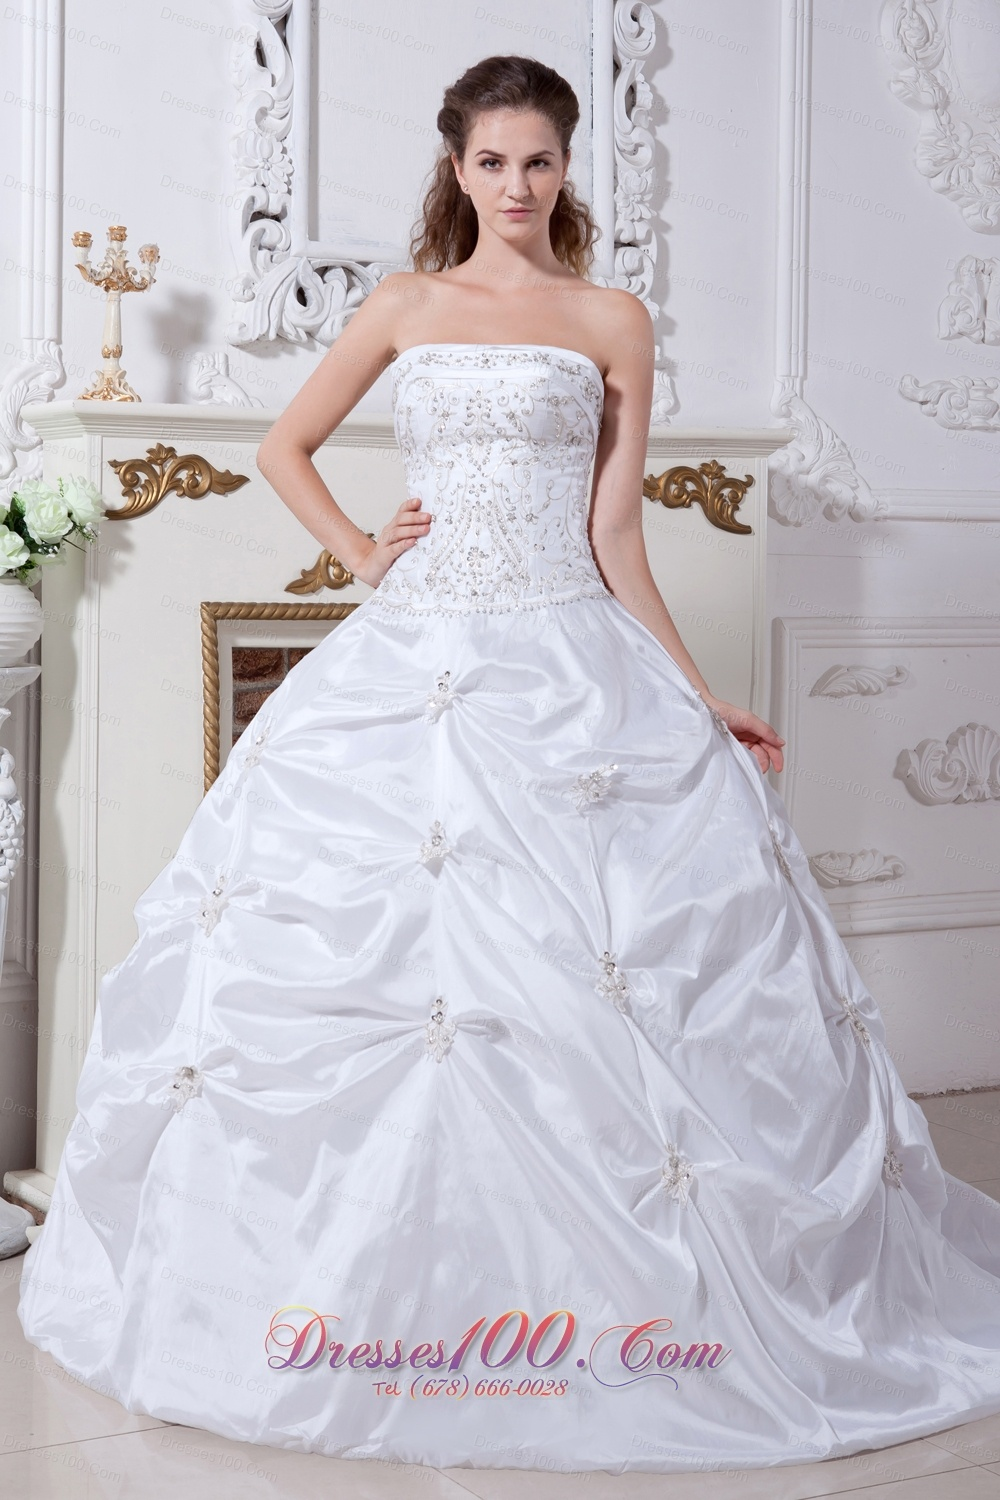 White Witer Ball Gown Wedding Dress Embroidery Pick-ups |Top Selling ...